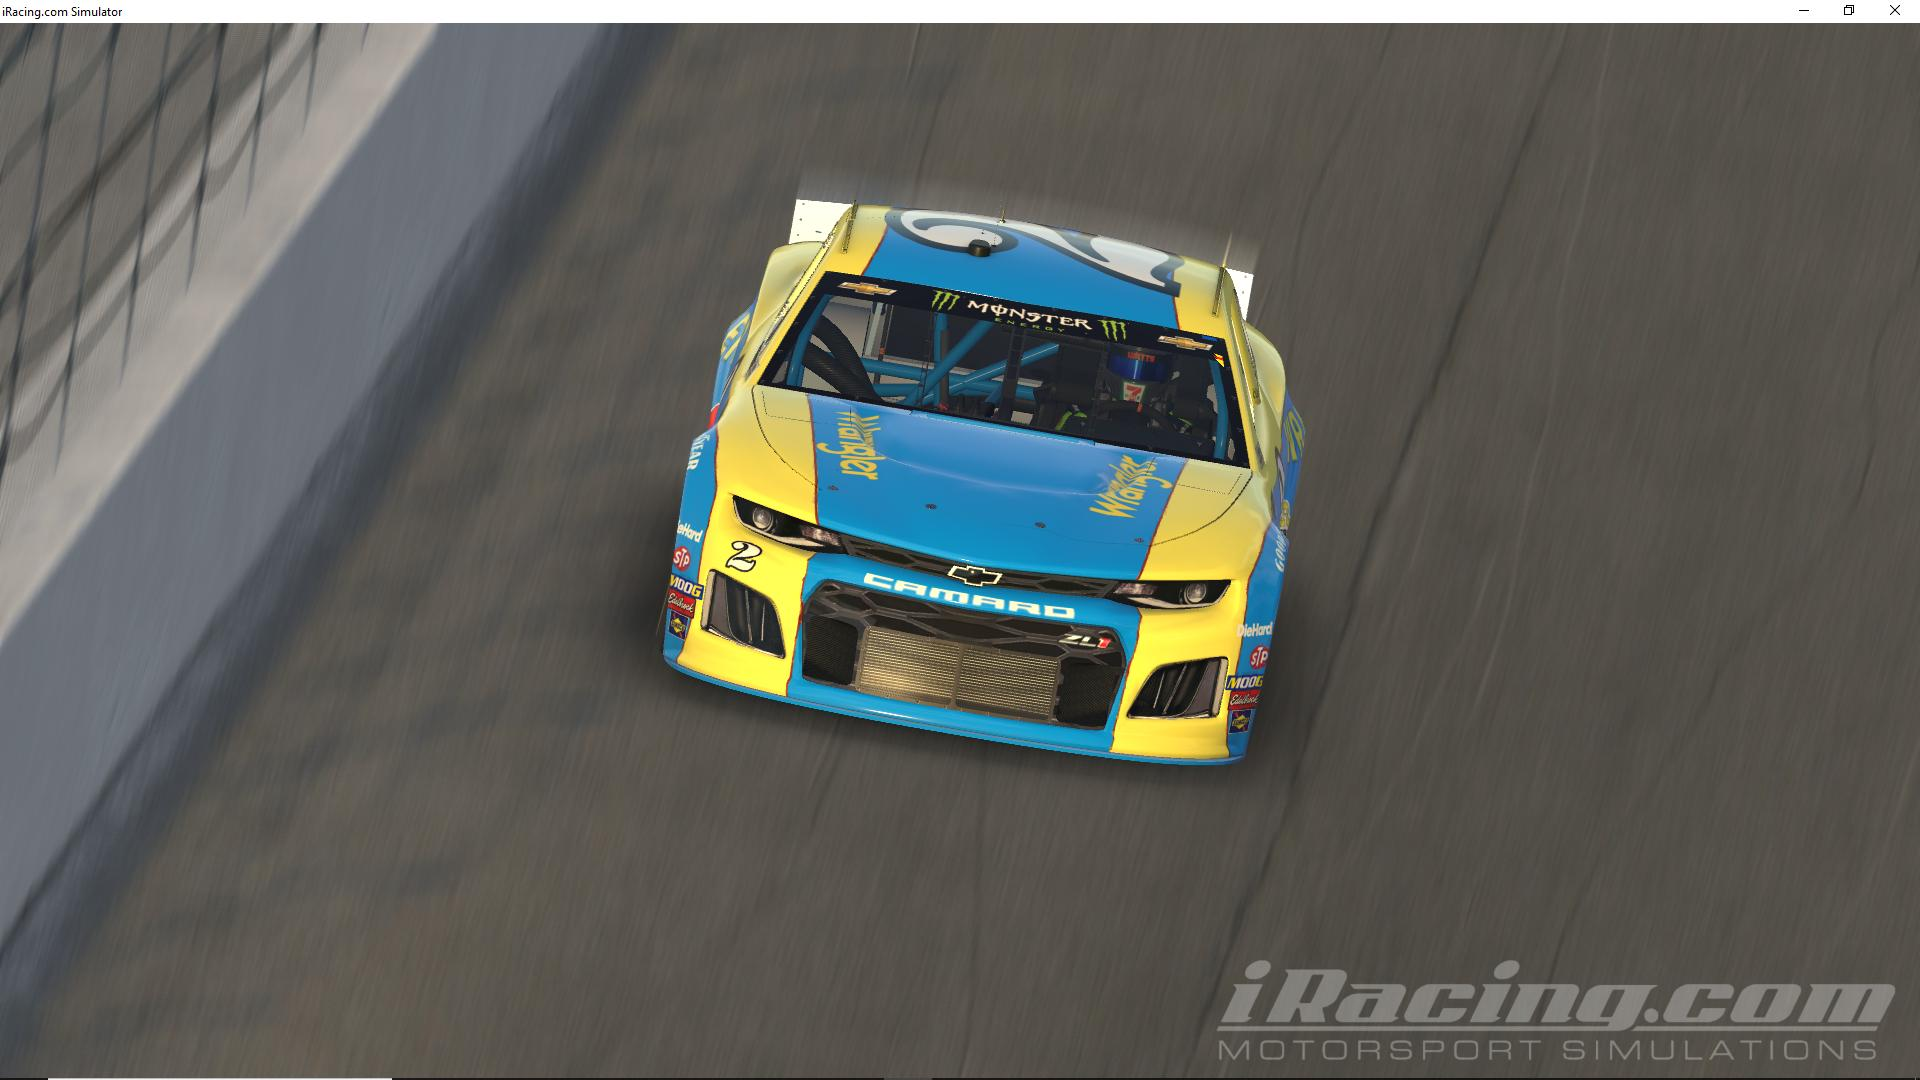 Preview of DaleSr 1980 ZL1 Throwback by Mike W.